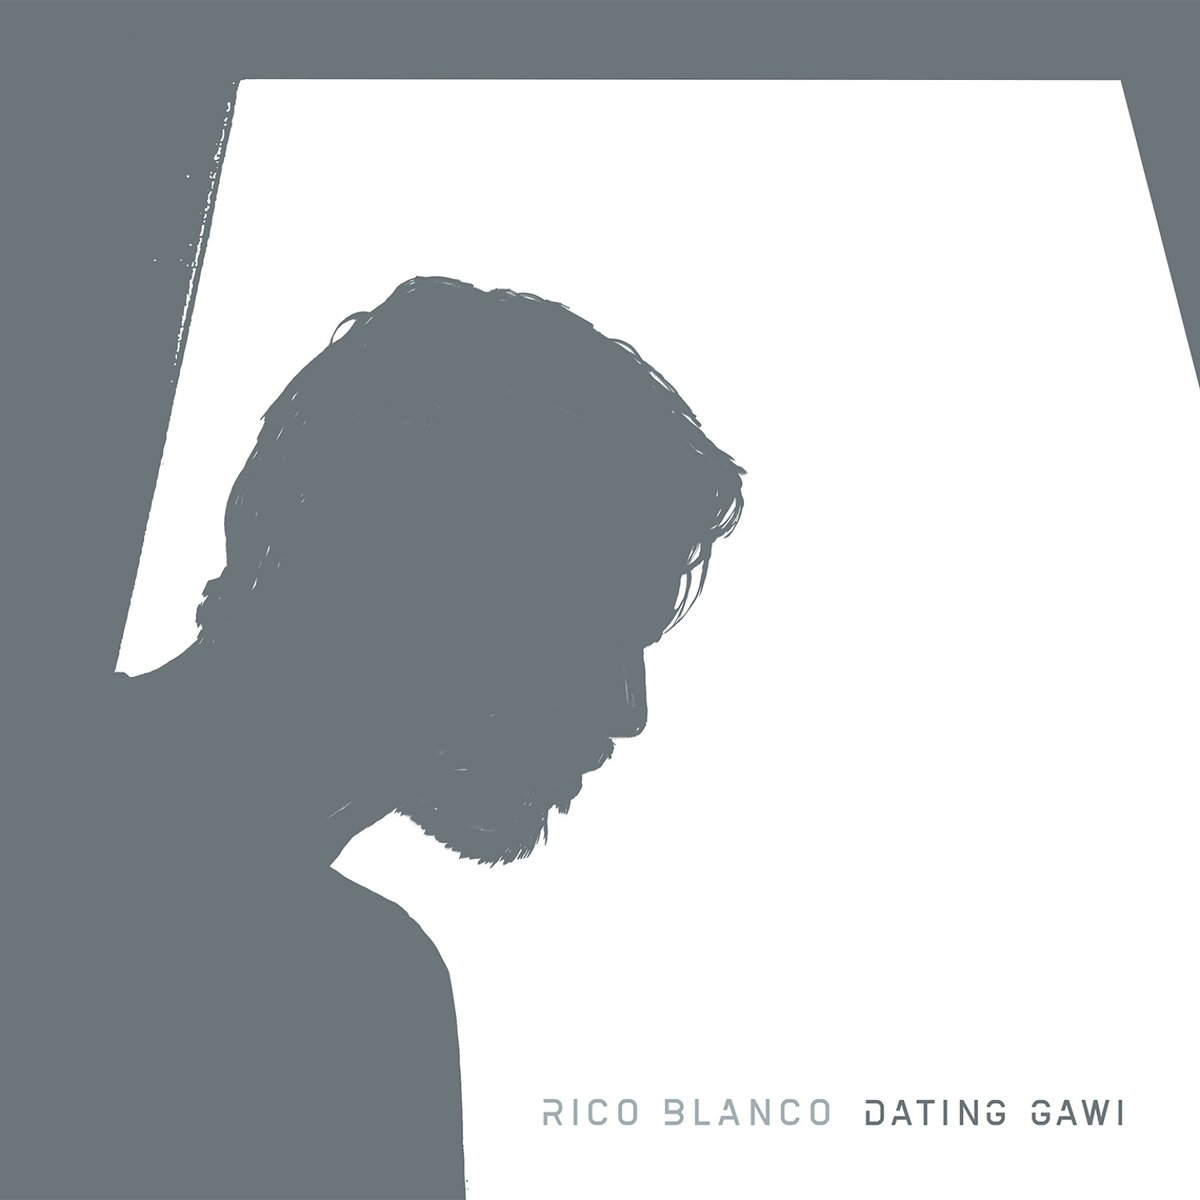 Rico blanco dating gawi